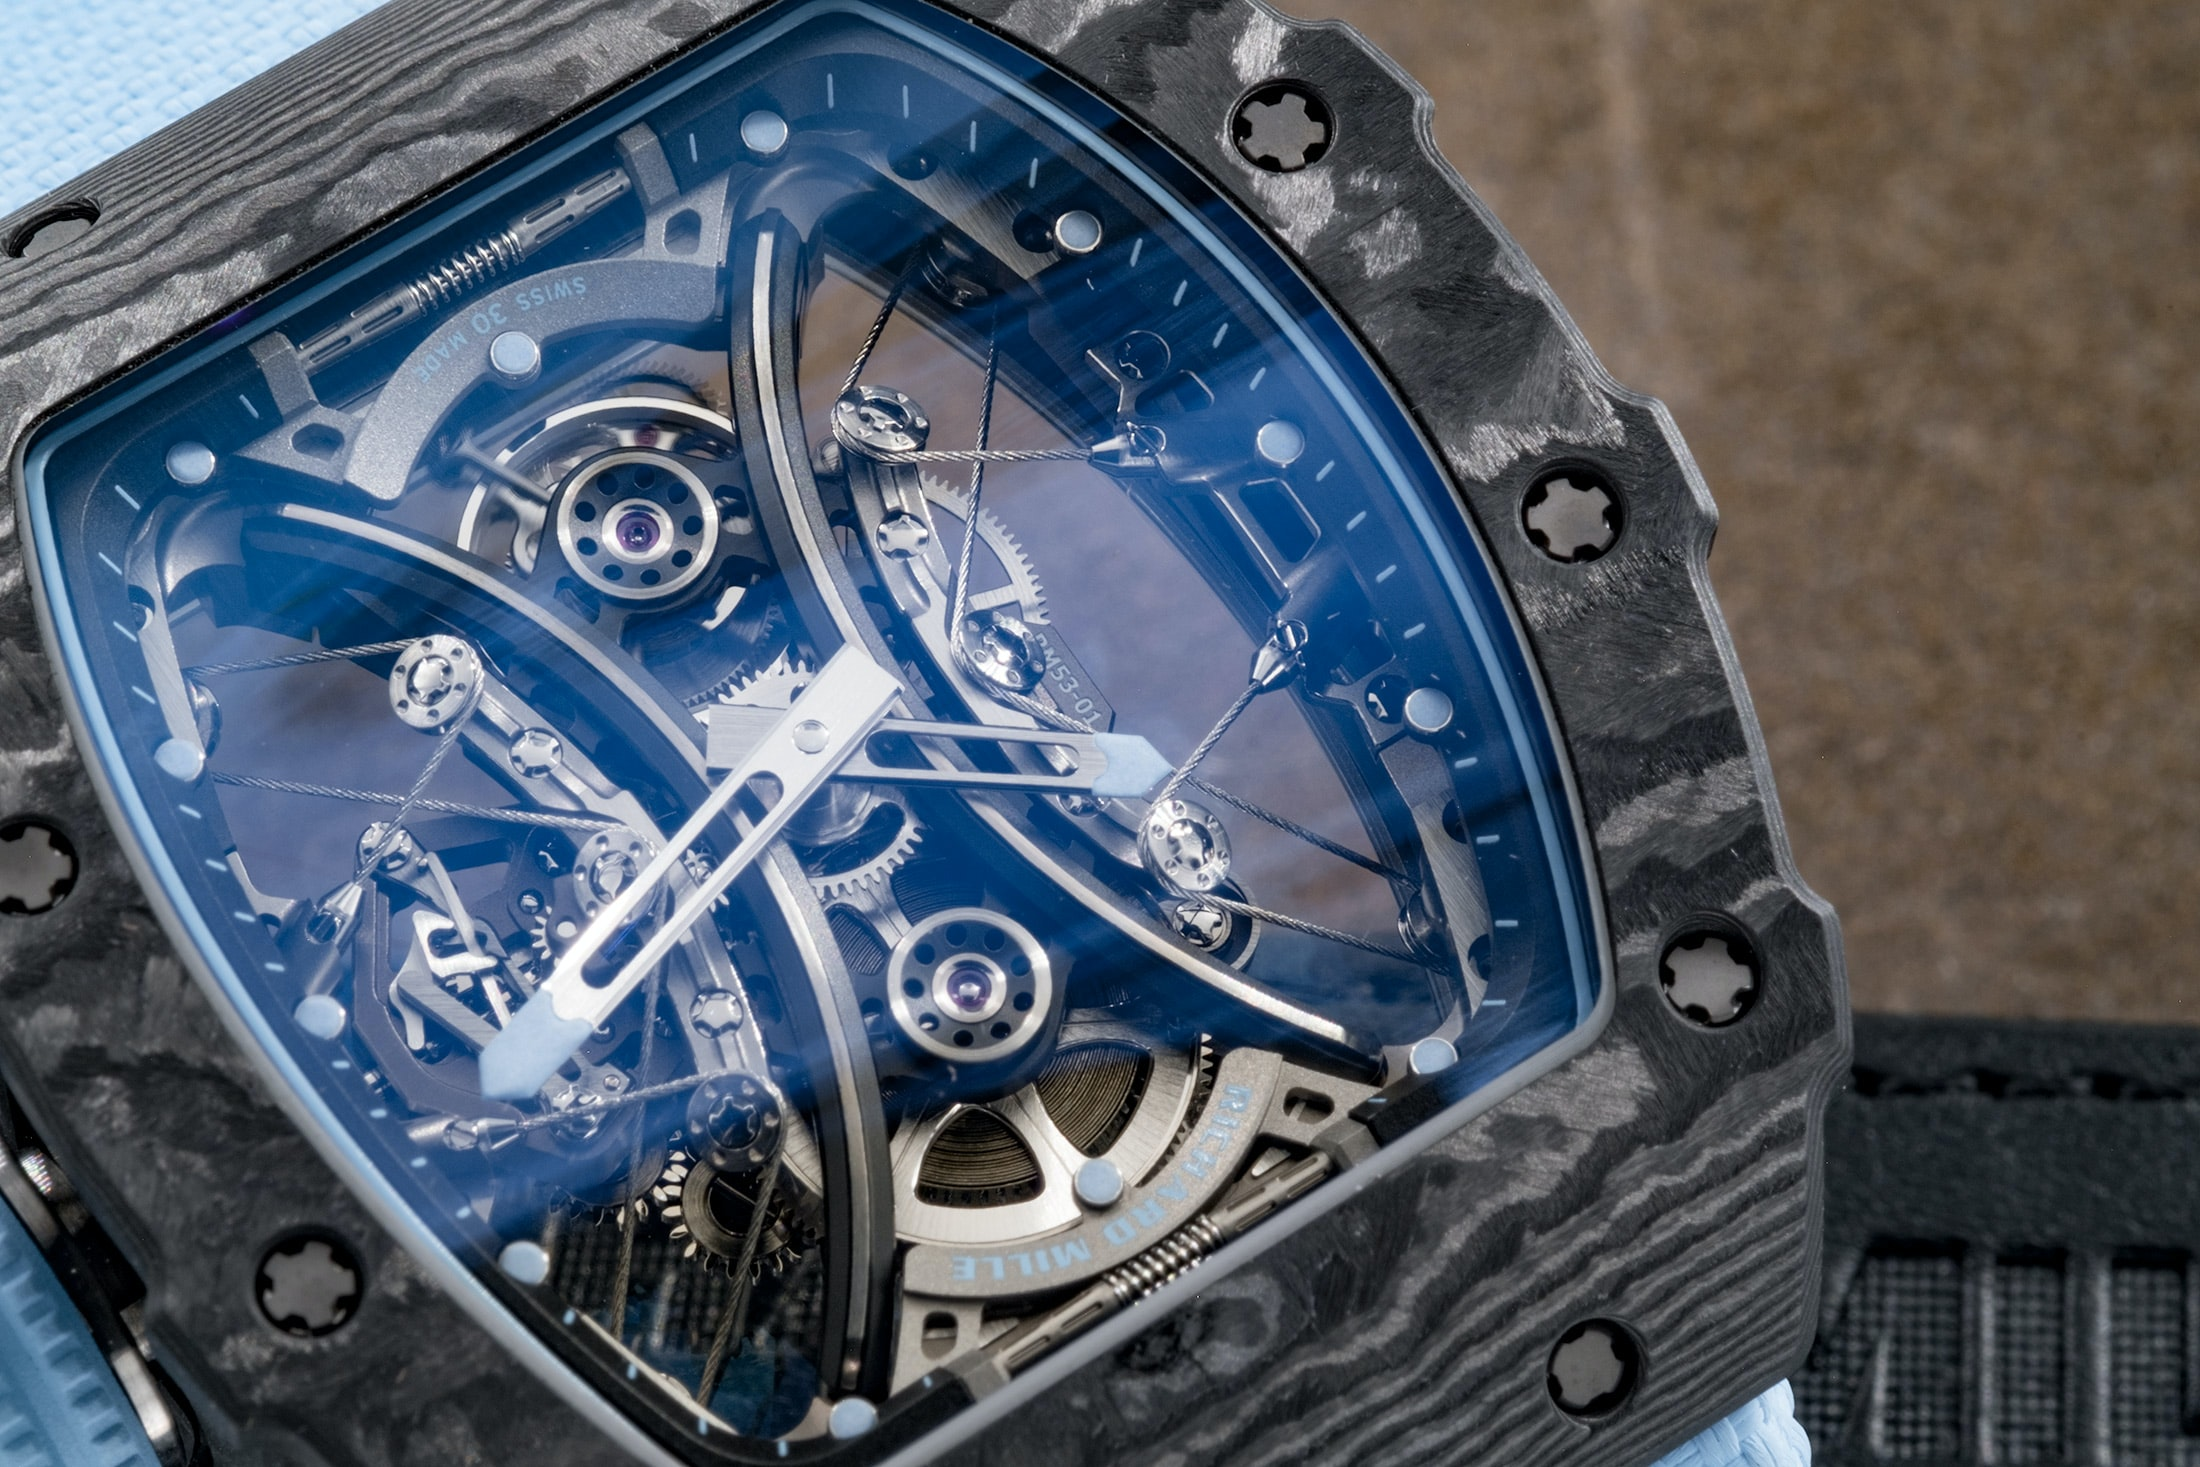 Hands-On: The Richard Mille RM 53-01 Tourbillon Pablo Mac Donough Hands-On: The Richard Mille RM 53-01 Tourbillon Pablo Mac Donough rm5301 02